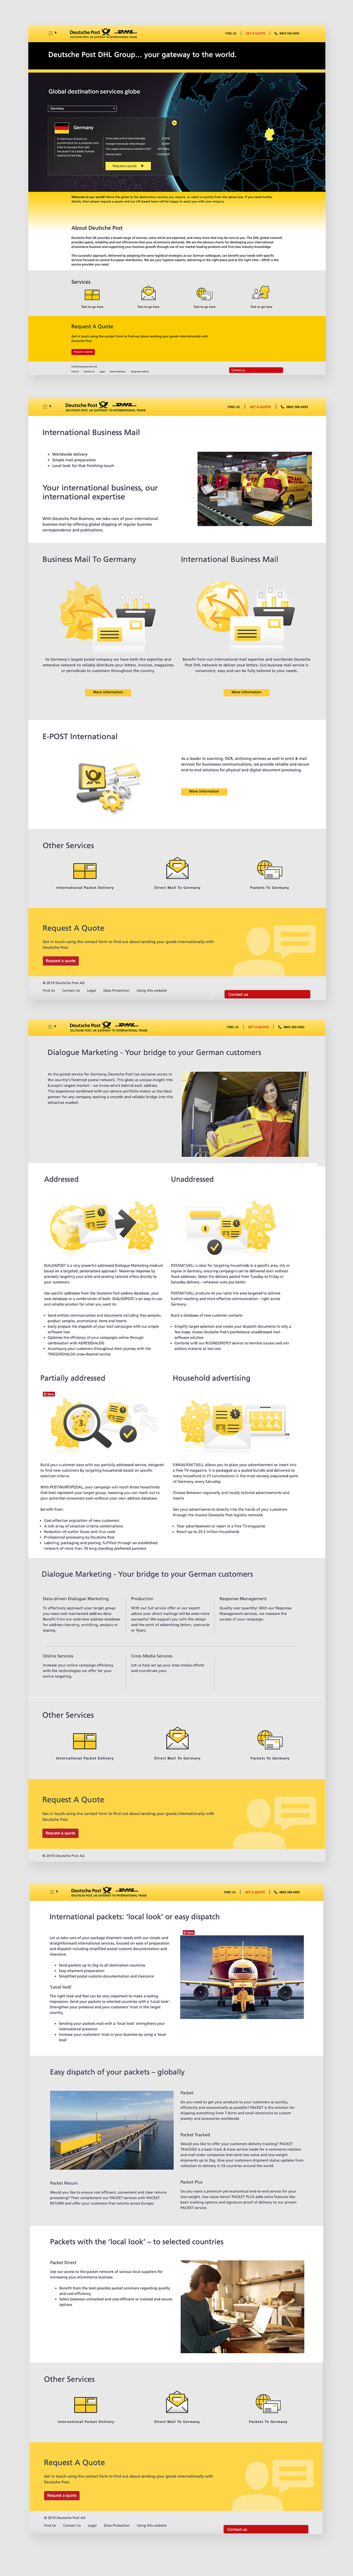 Deutsche Post Web Pages